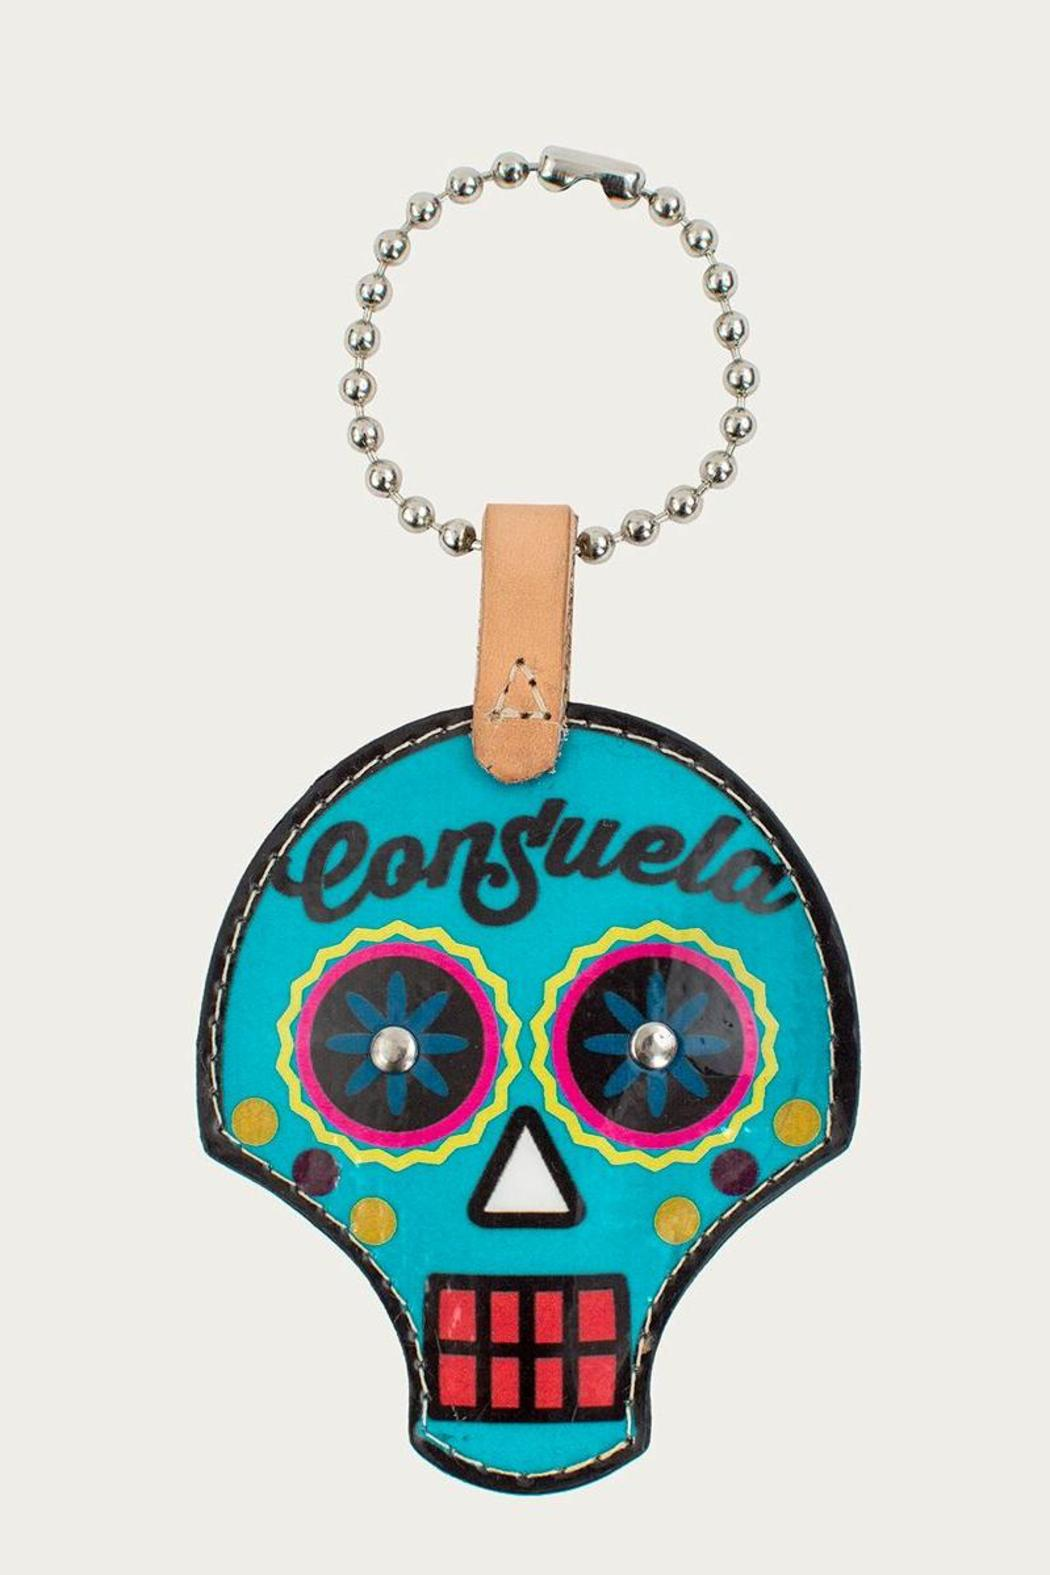 Consuela Sugar Skull Charm from Texas by Consuela — Shoptiques